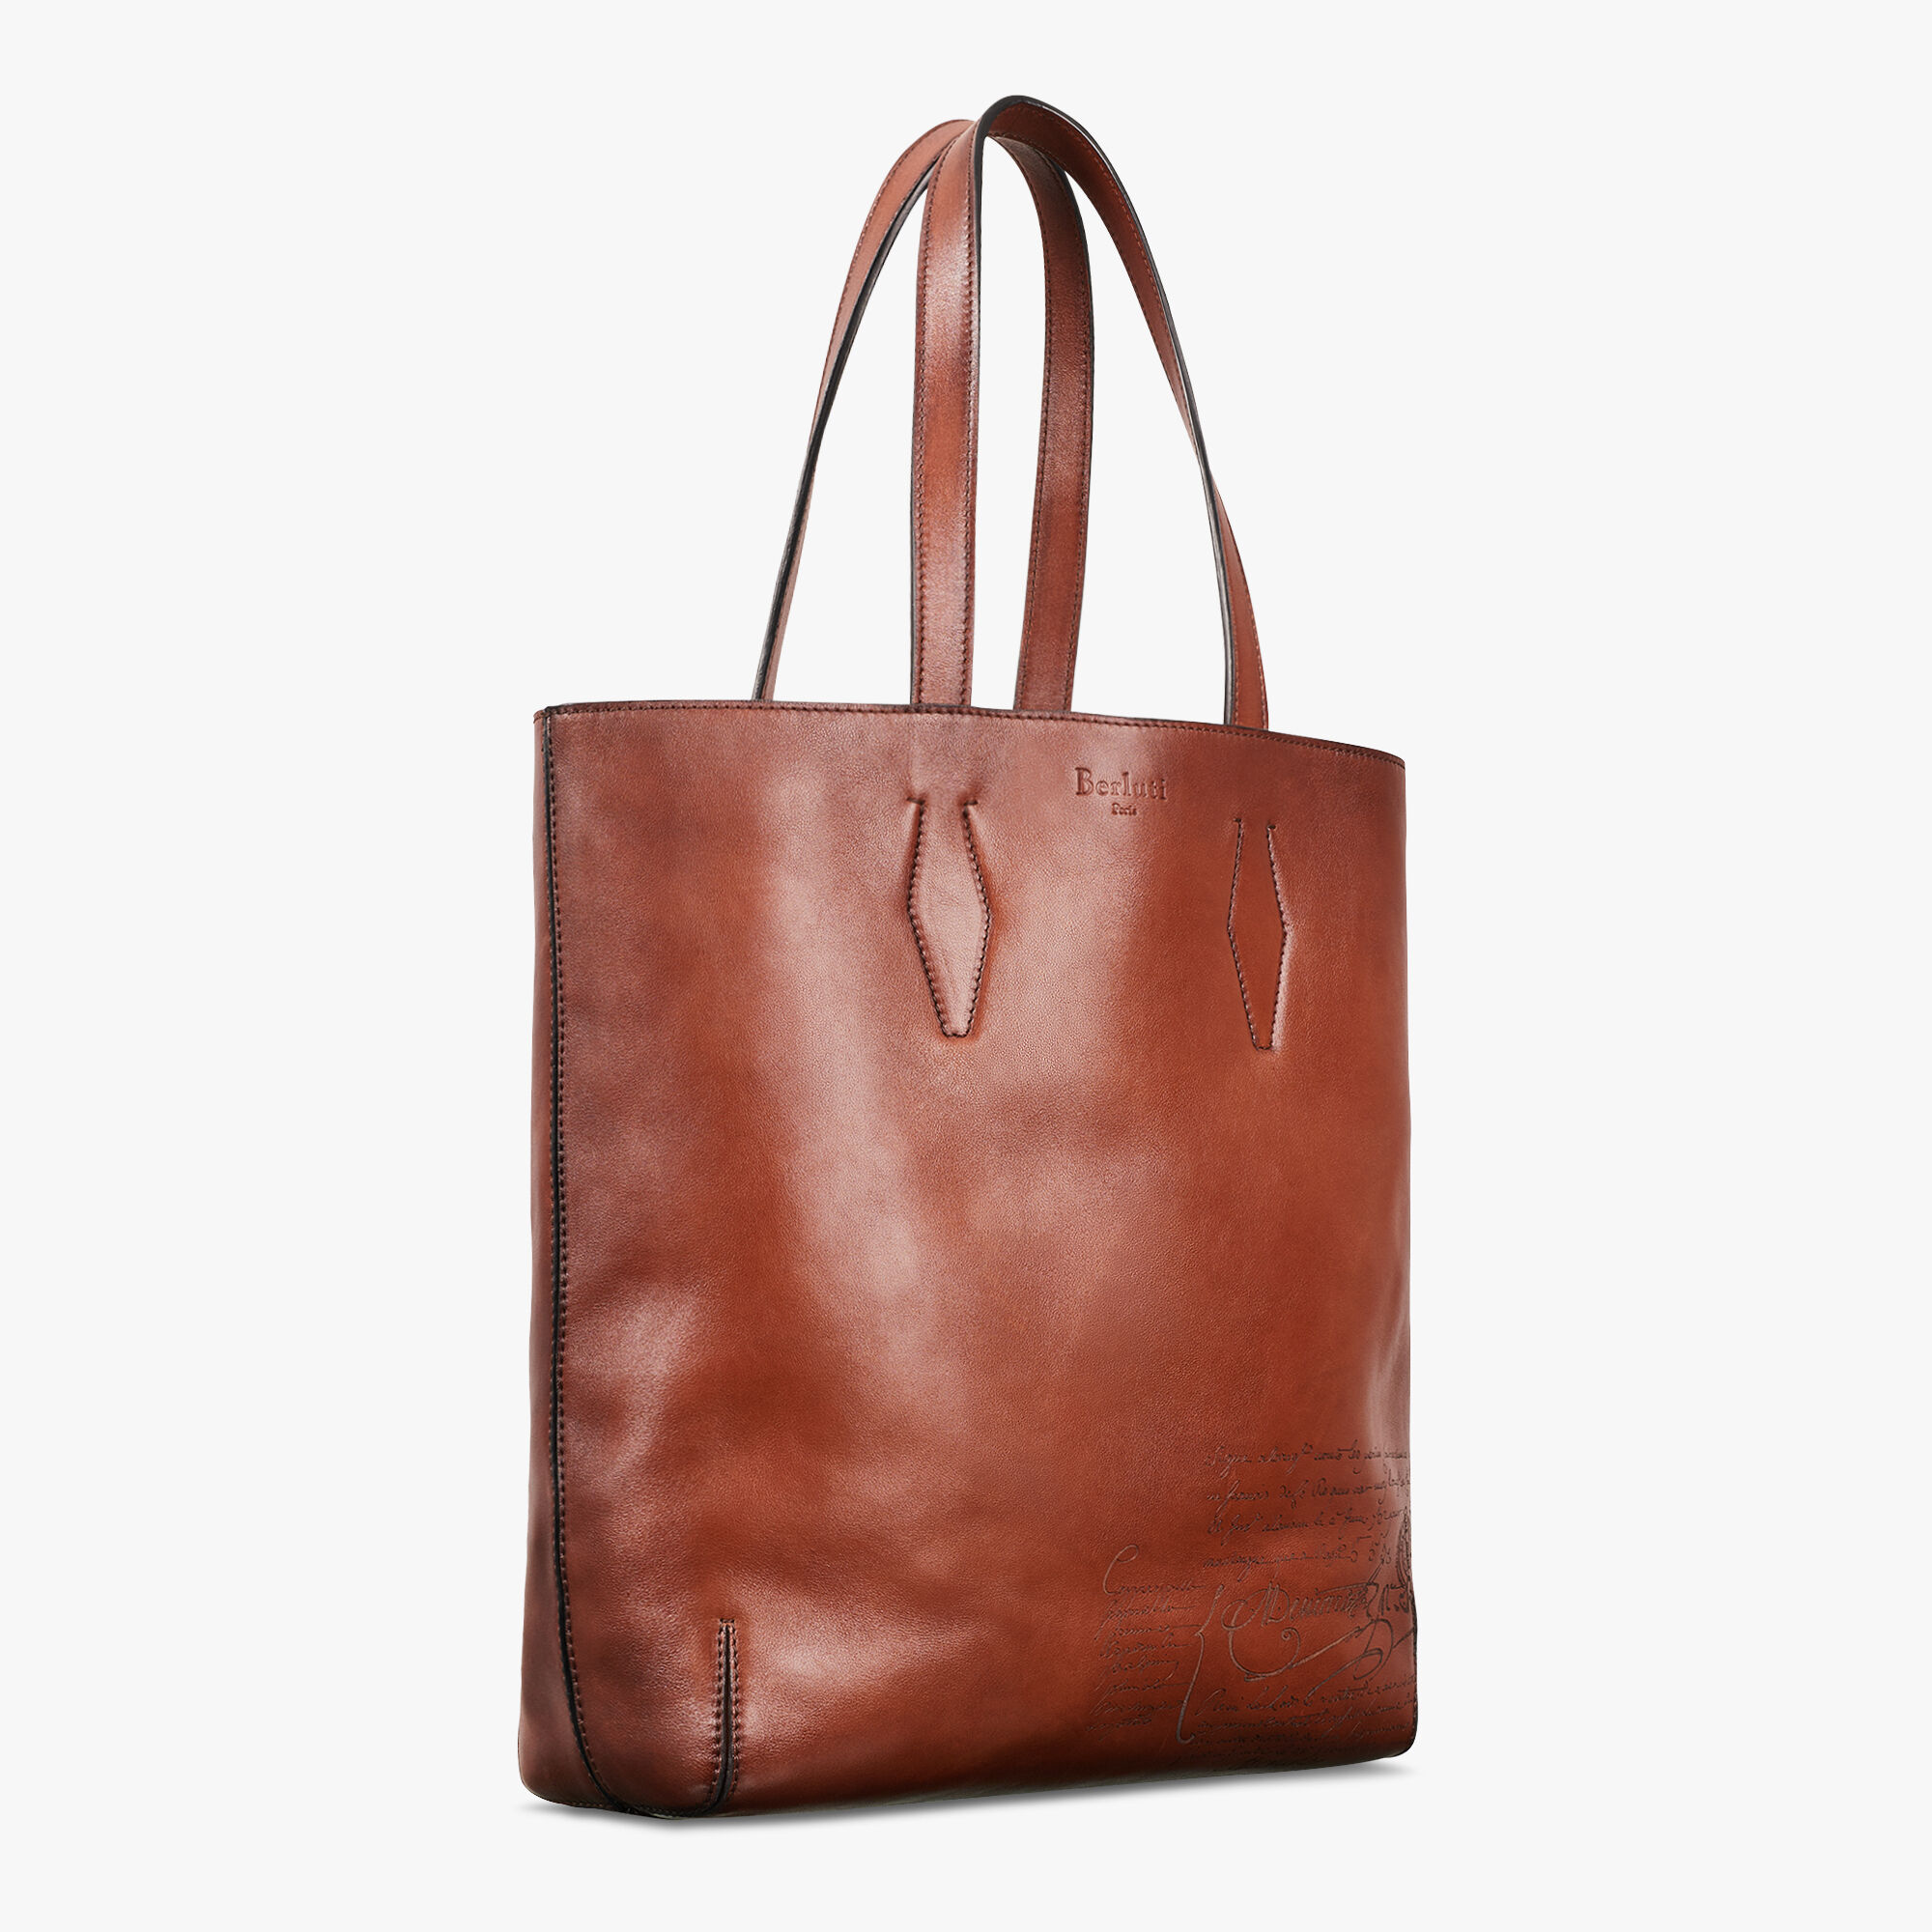 Esquisse leather tote Berluti hOVpkOK